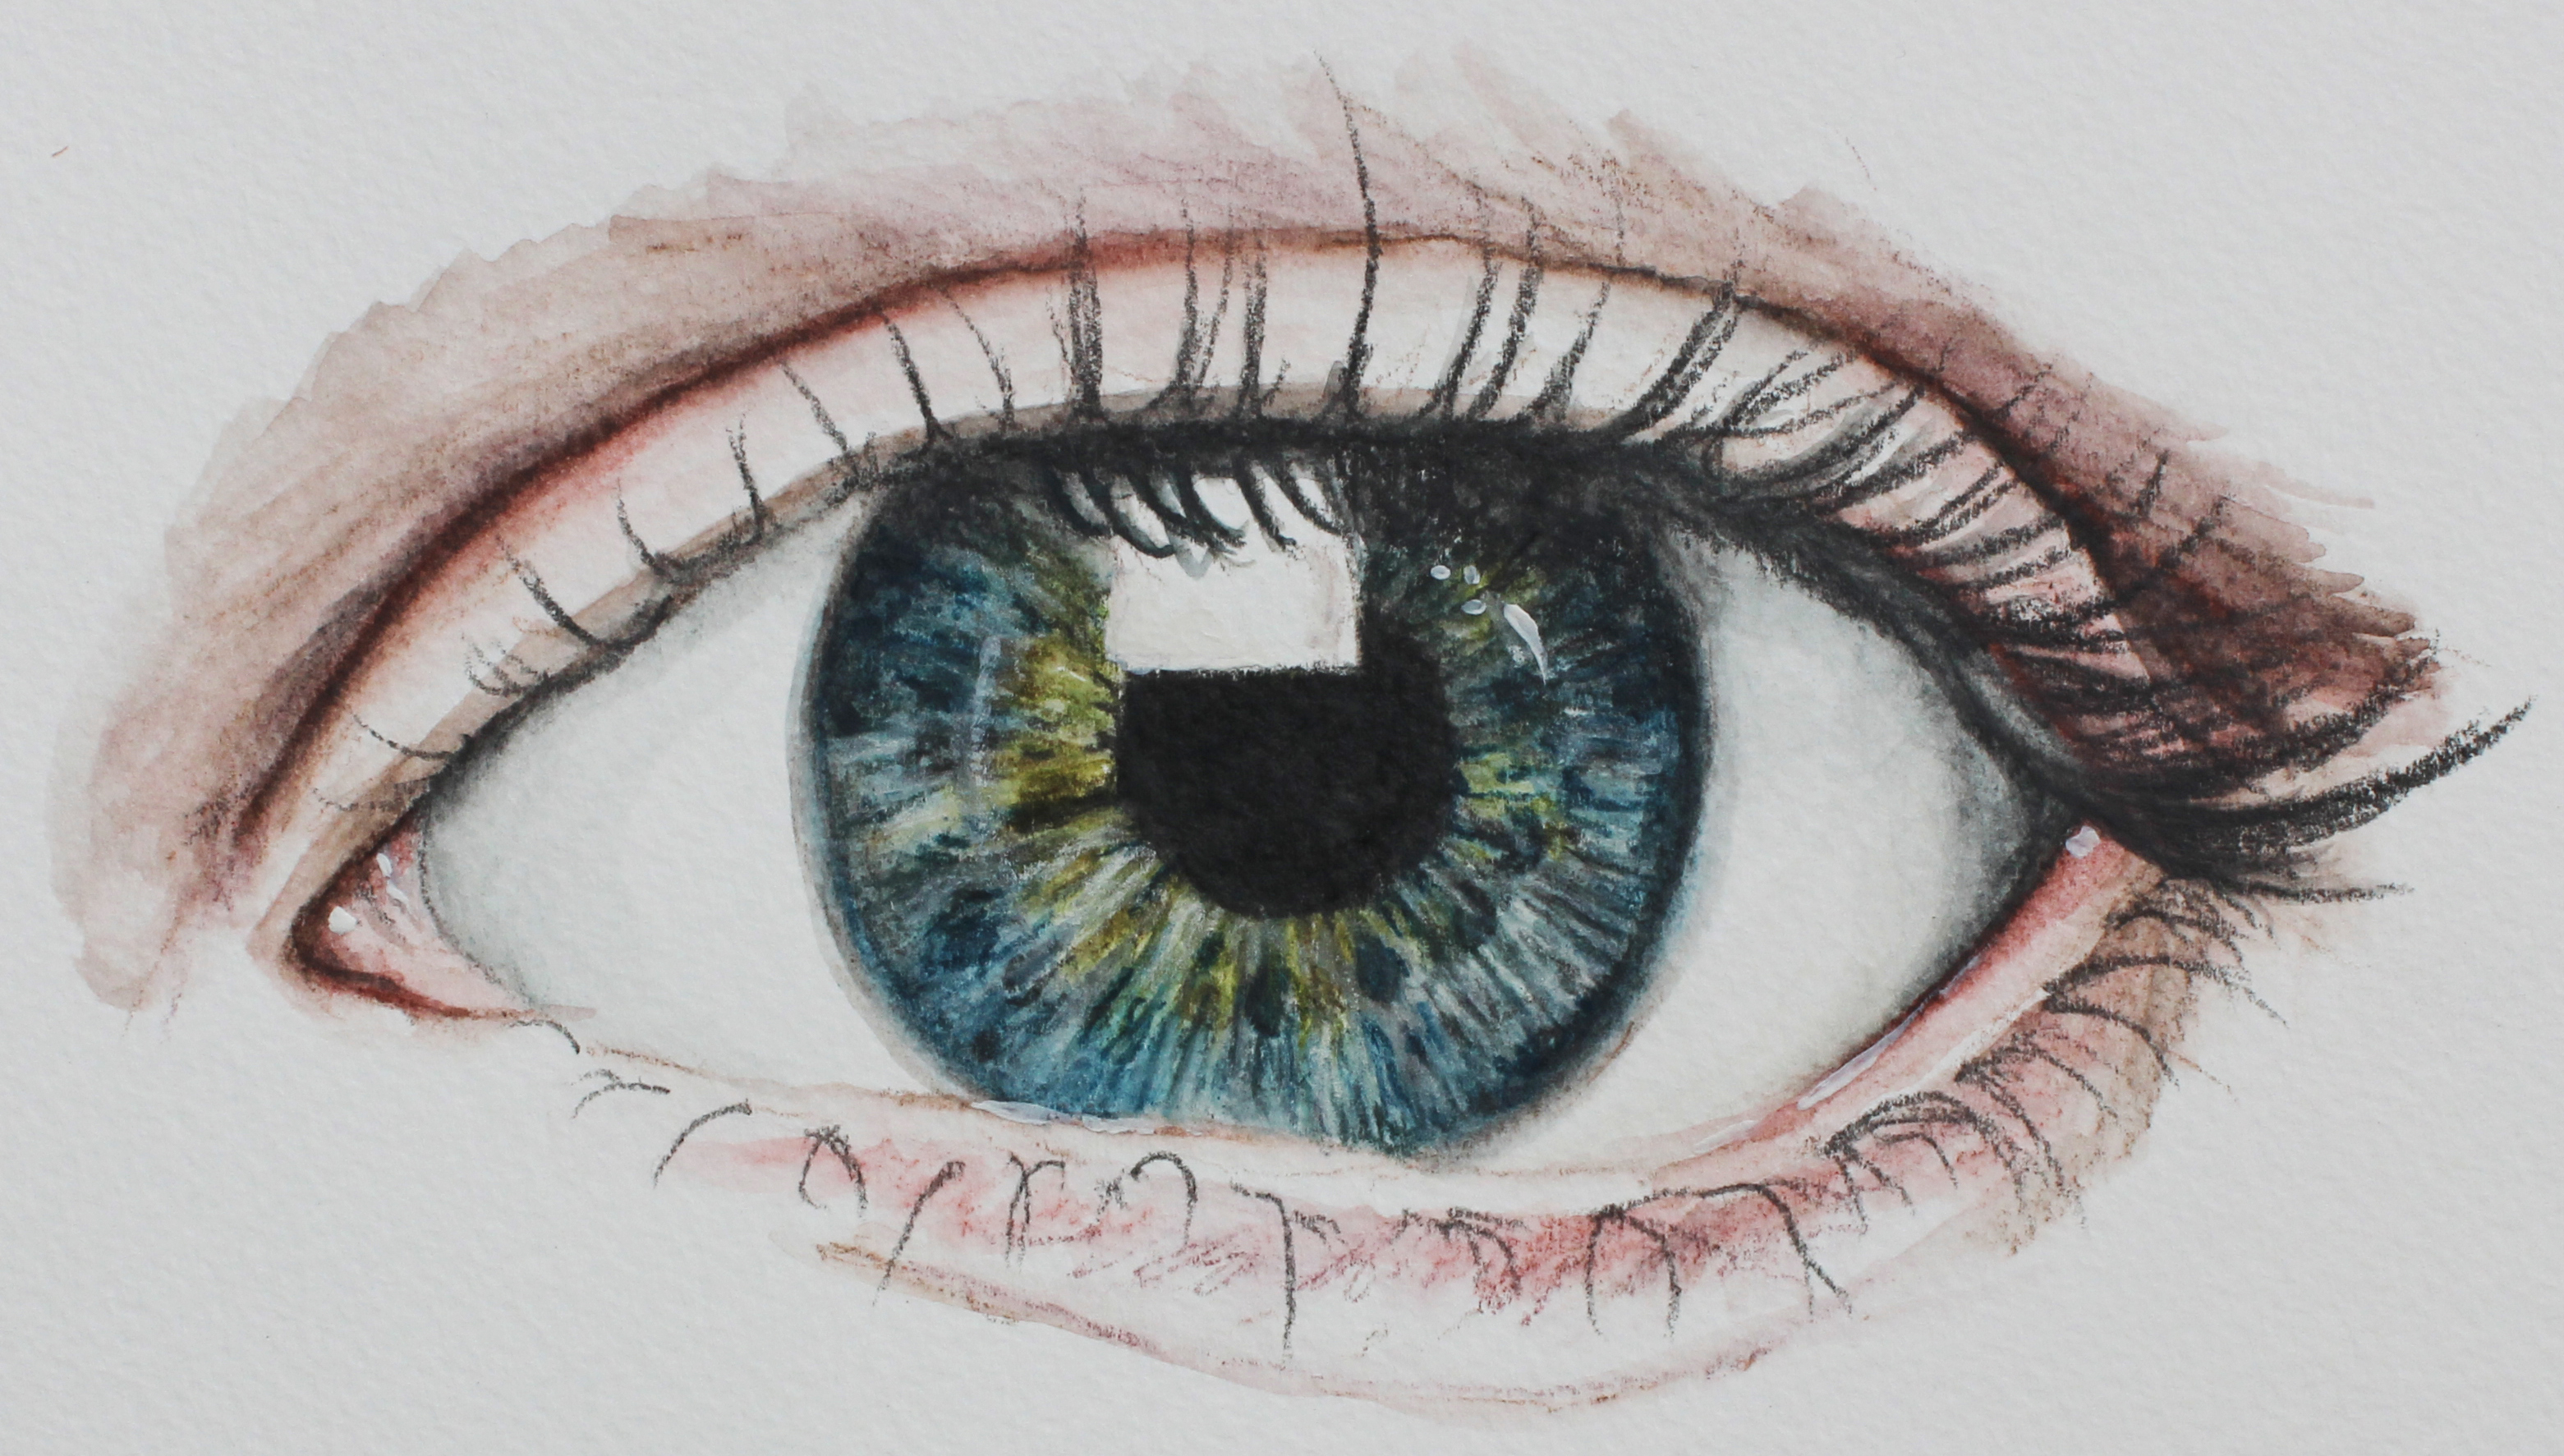 How to draw with colored graphite - Finished image